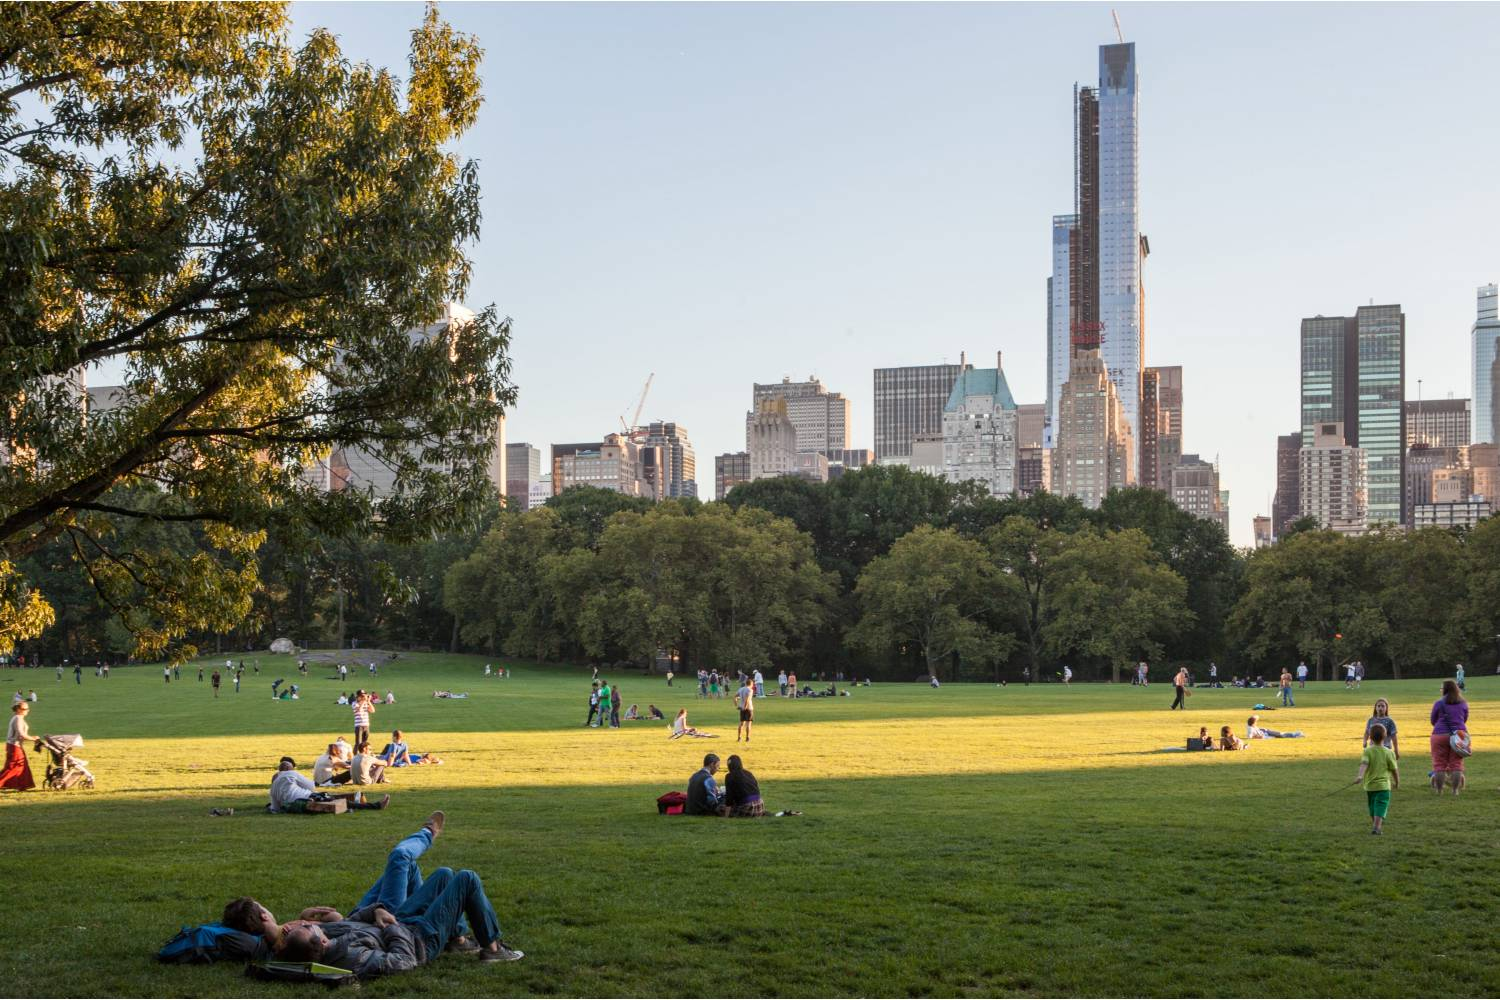 Central Park (New York City) - 2018 All You Need to Know